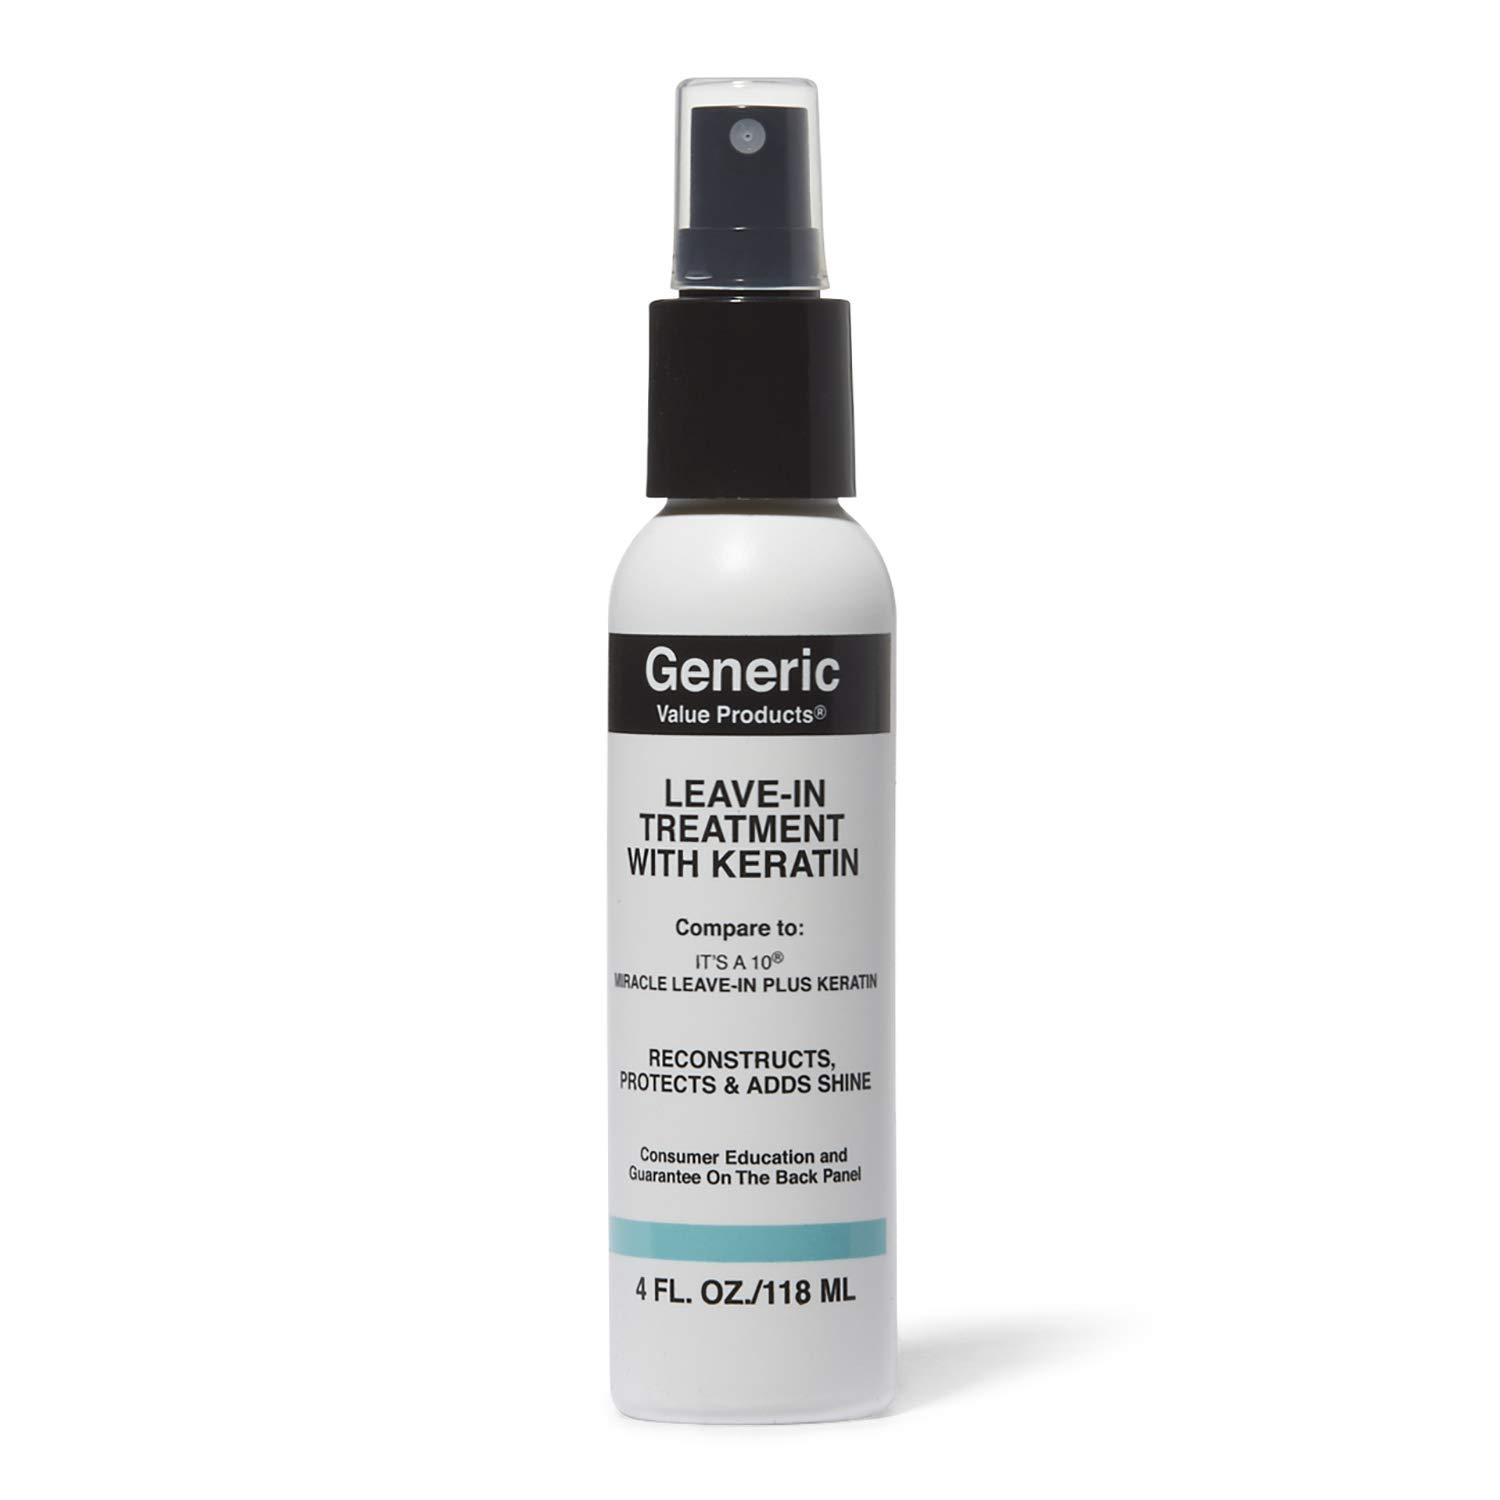 GVP Leave In Treatment with Keratin Compare to 10 Miracle Leave-in Plus Keratin